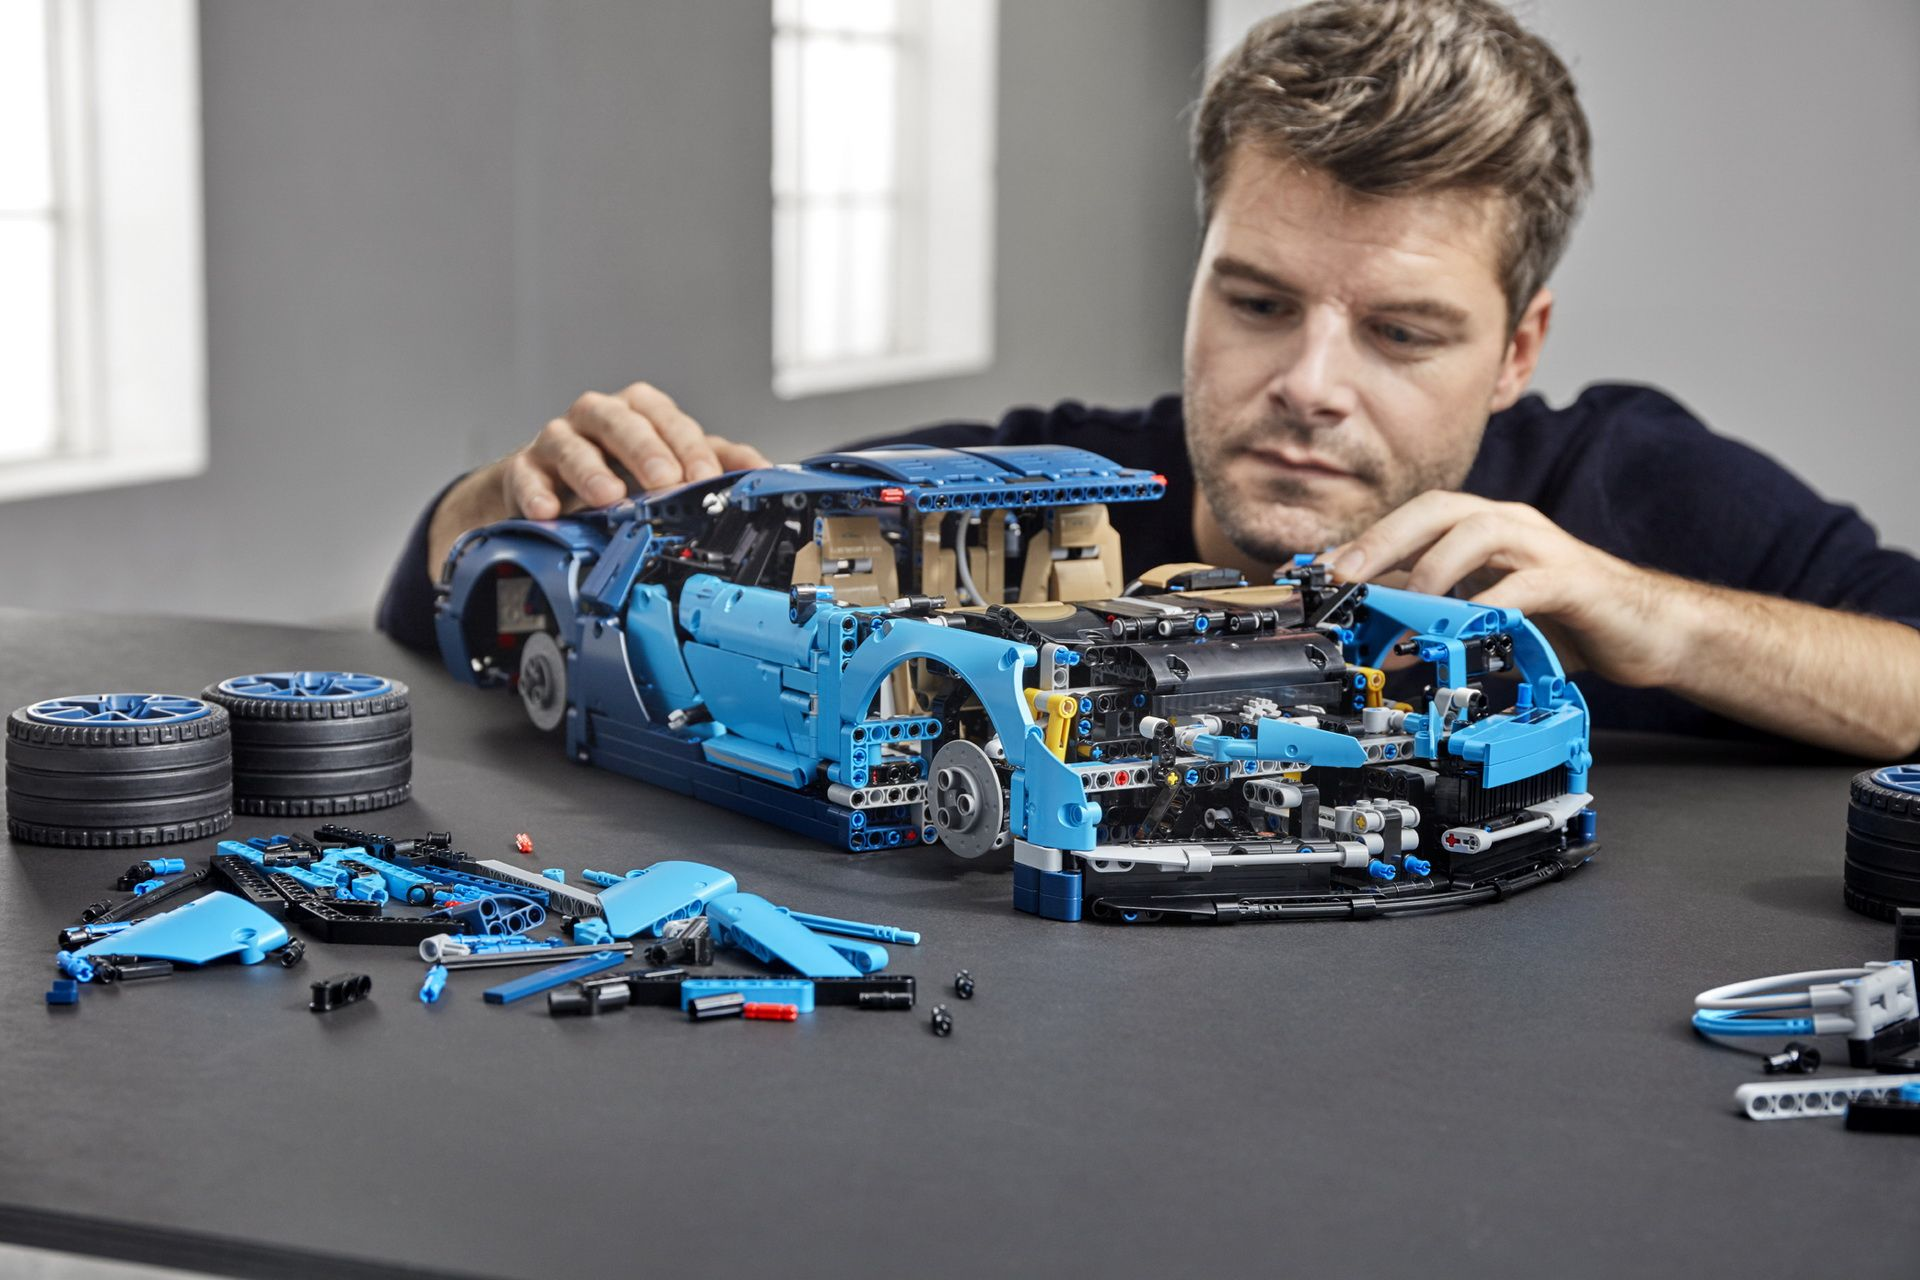 Index of /wp-content/gallery/2018/bugatti-chiron-lego-technic/